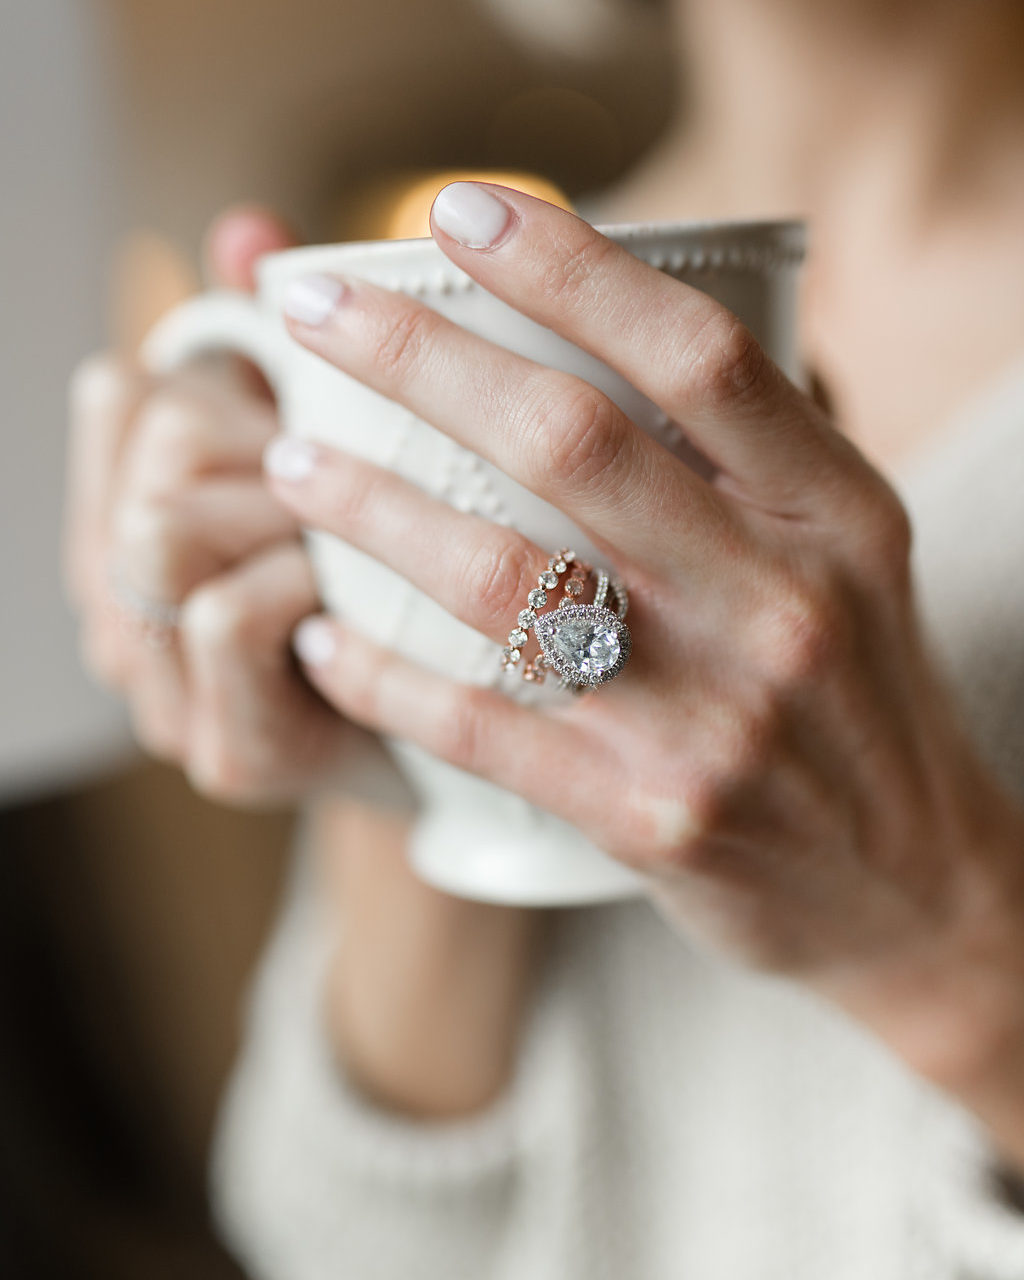 What You Need To Know About Everly Rings